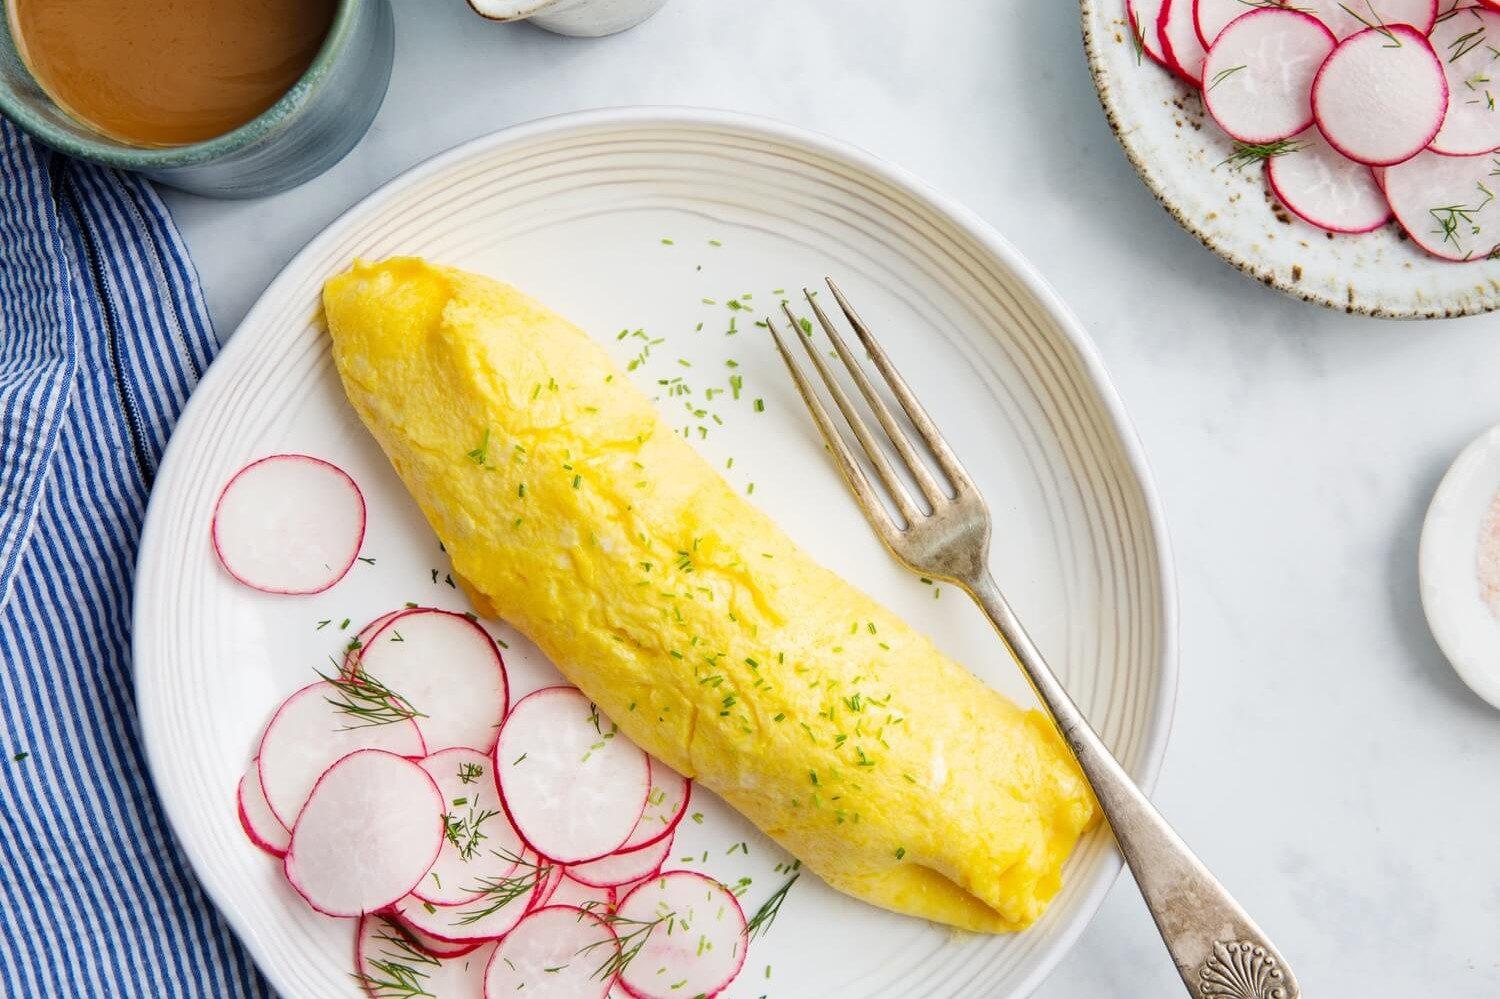 A classic French omelette made with organic eggs and butter, boasting a golden yellow exterior and soft, custardy interior. The omelette is topped with minced chives and served with a side of thinly sliced radishes. | peteandgerrys.com